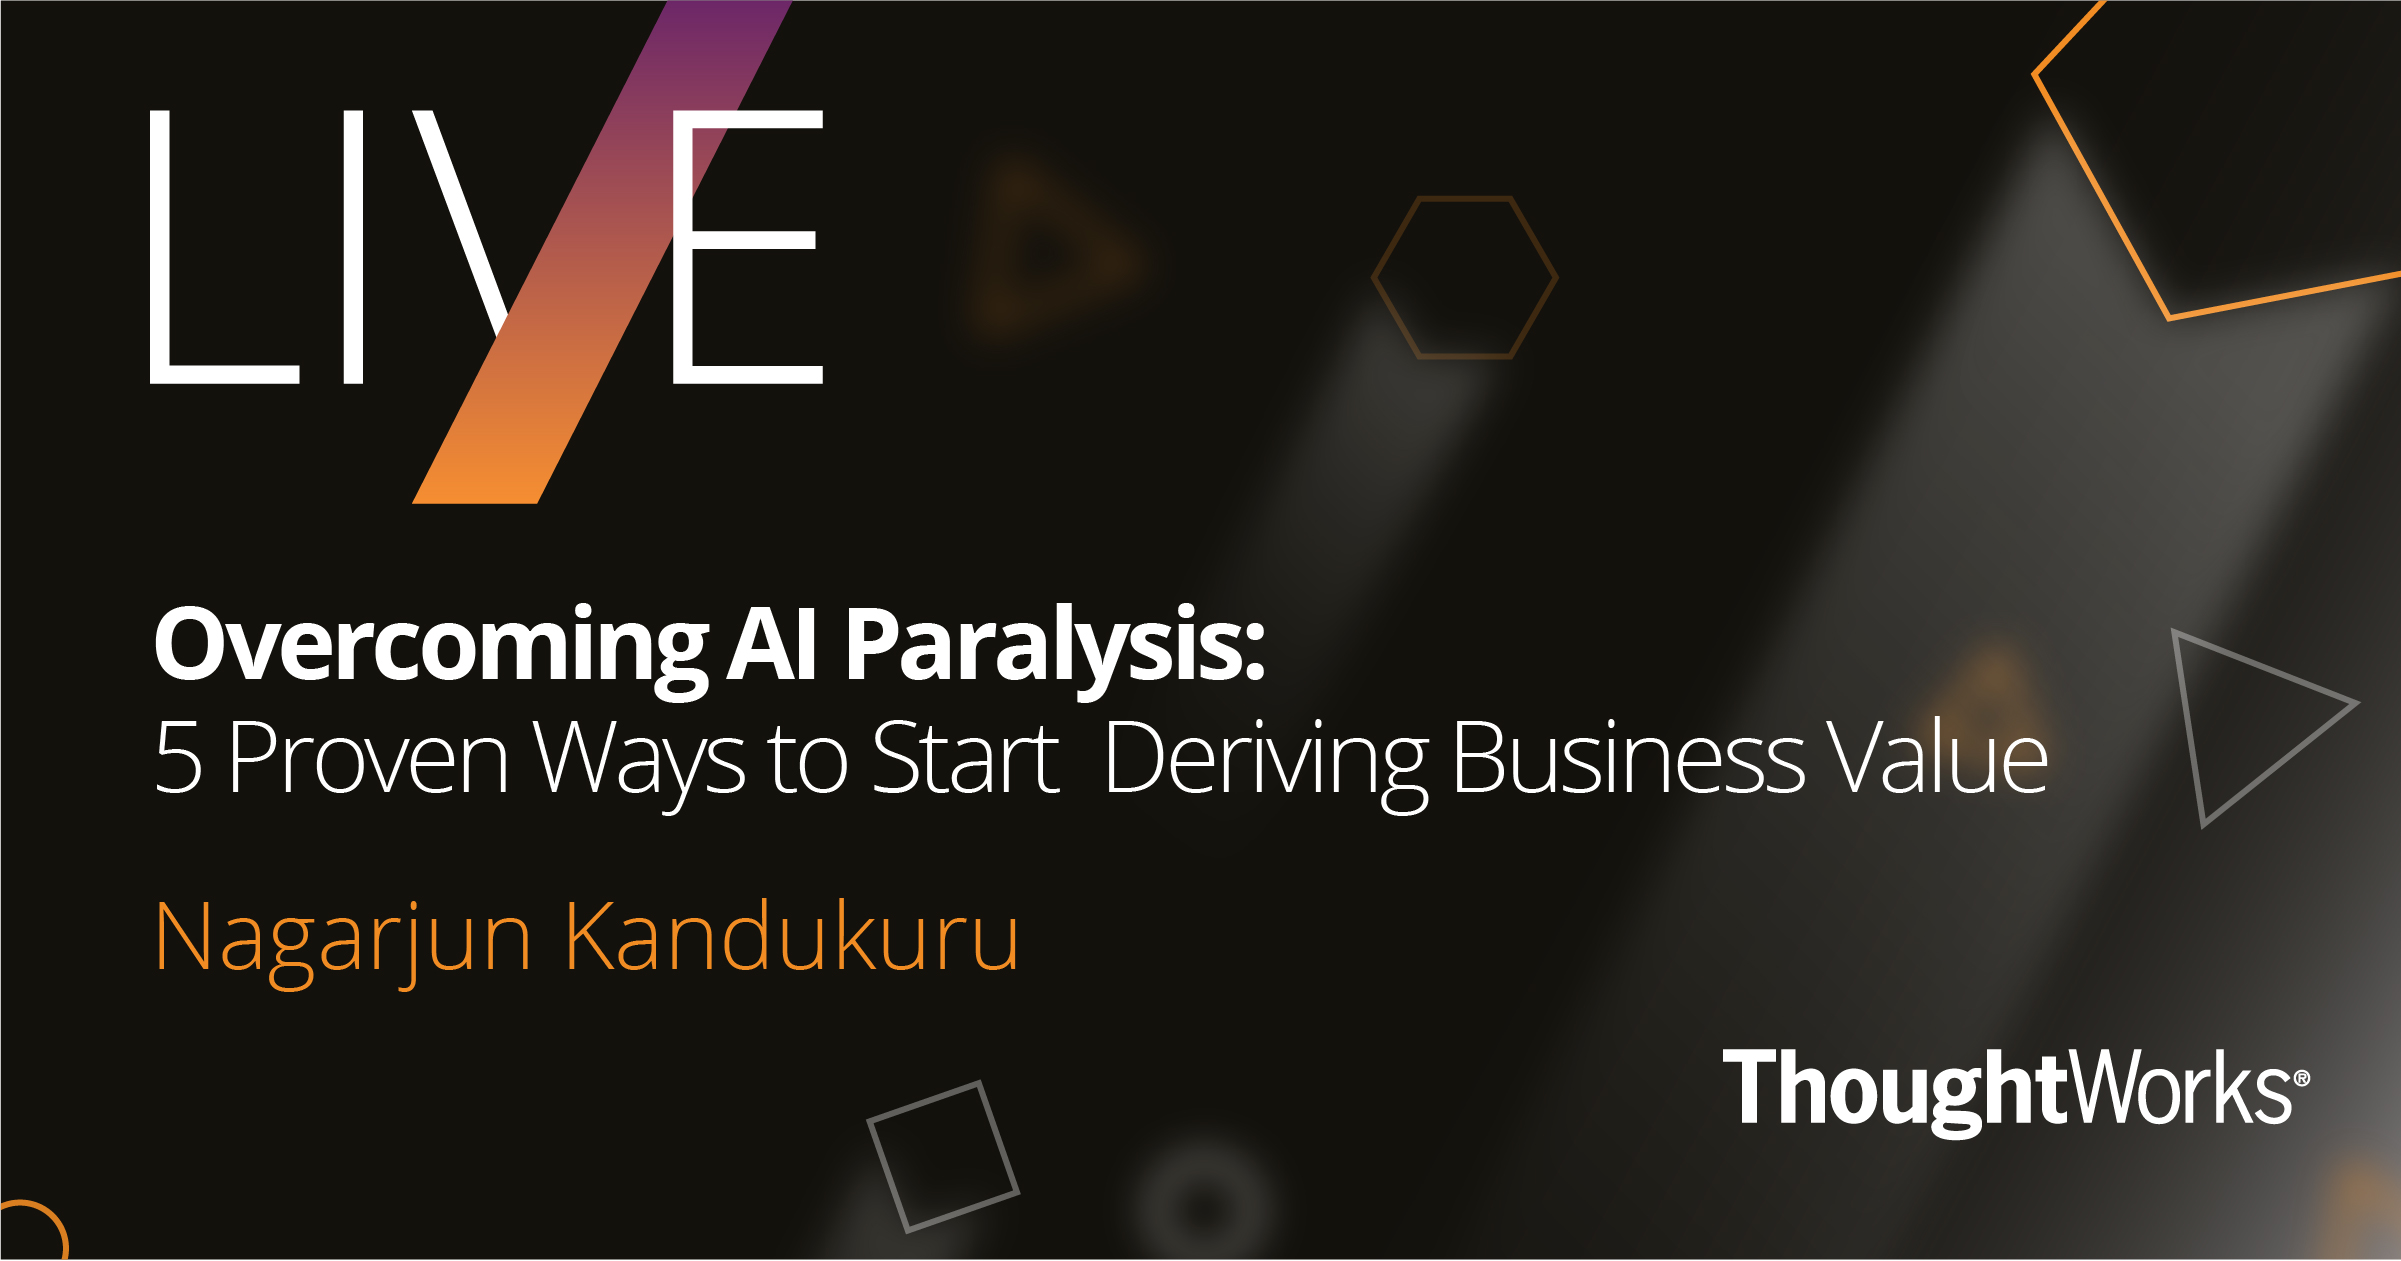 Overcoming AI Paralysis